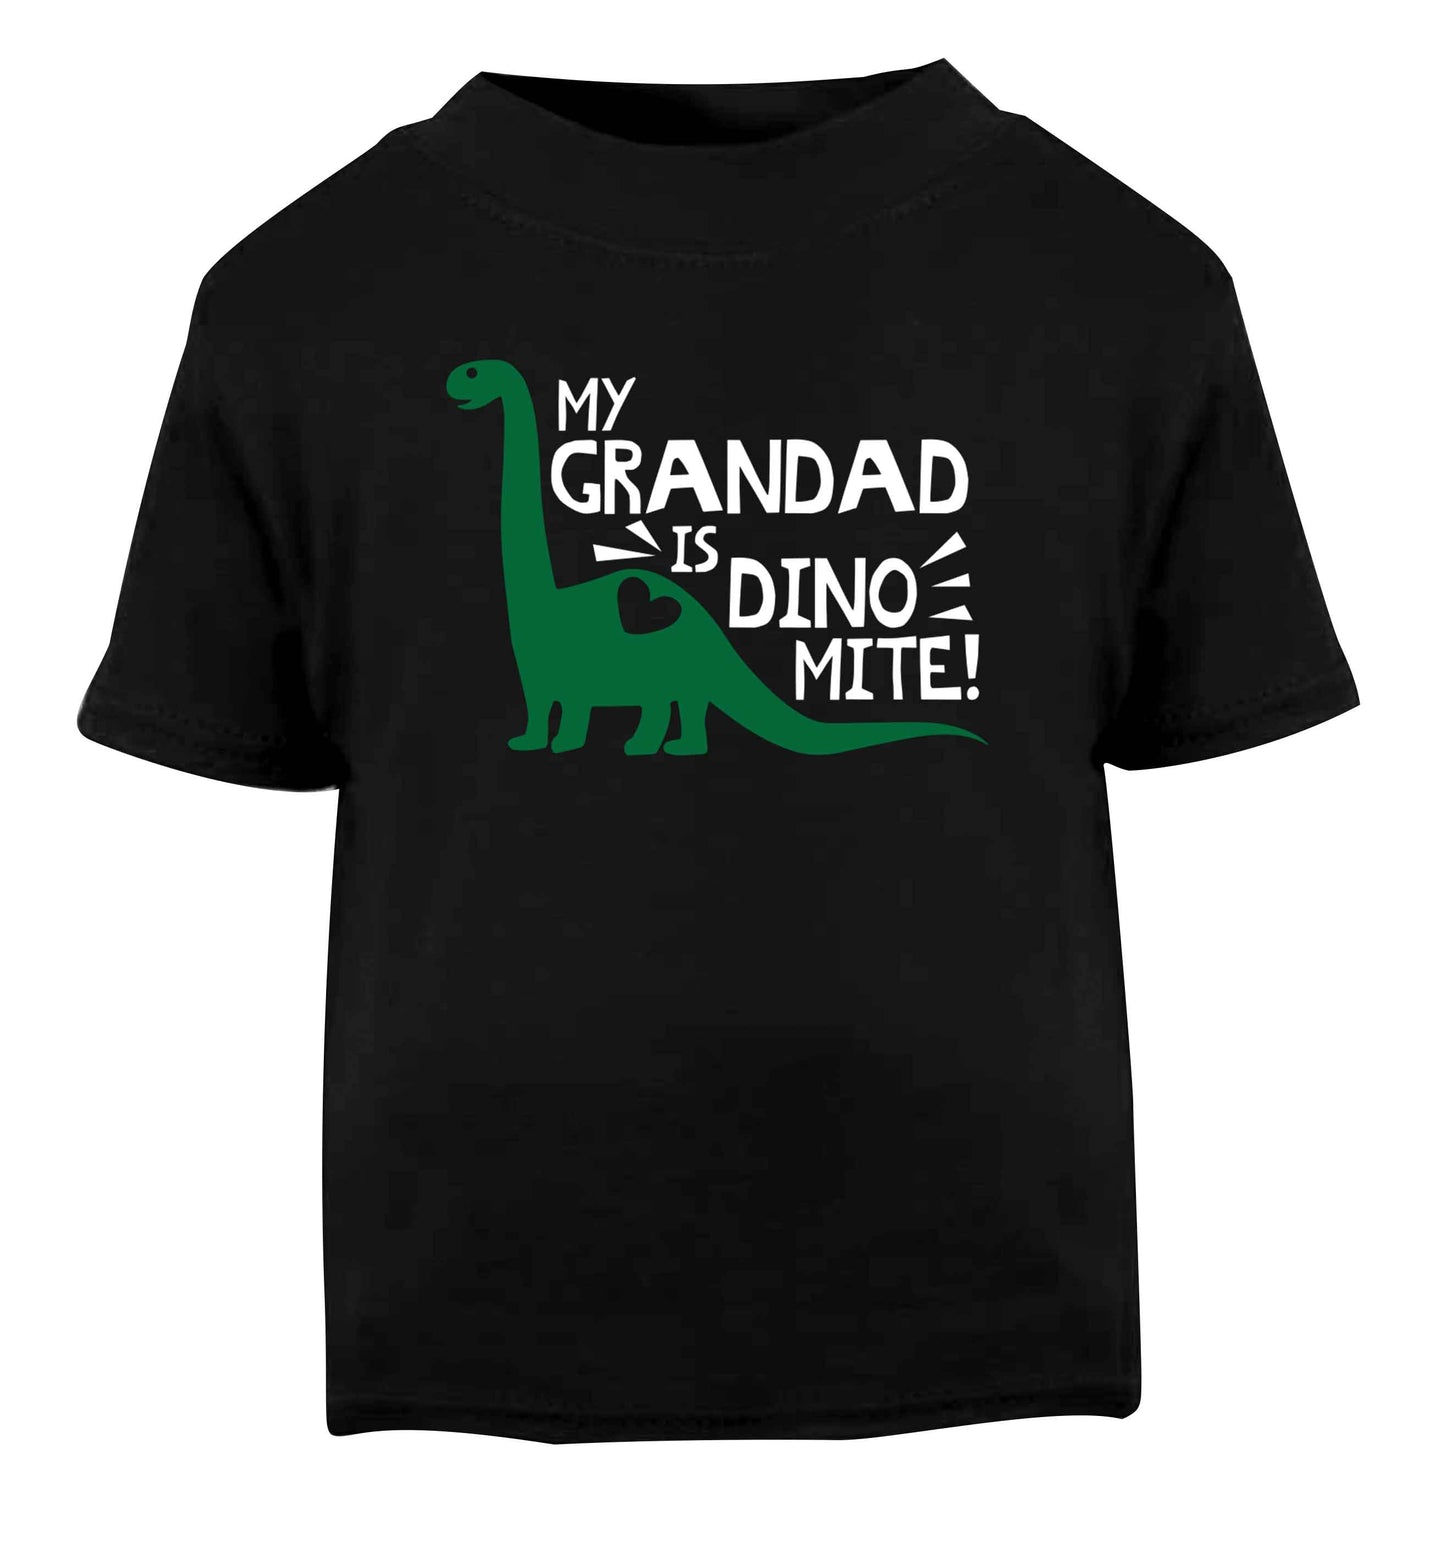 My grandad is dinomite! Black Baby Toddler Tshirt 2 years